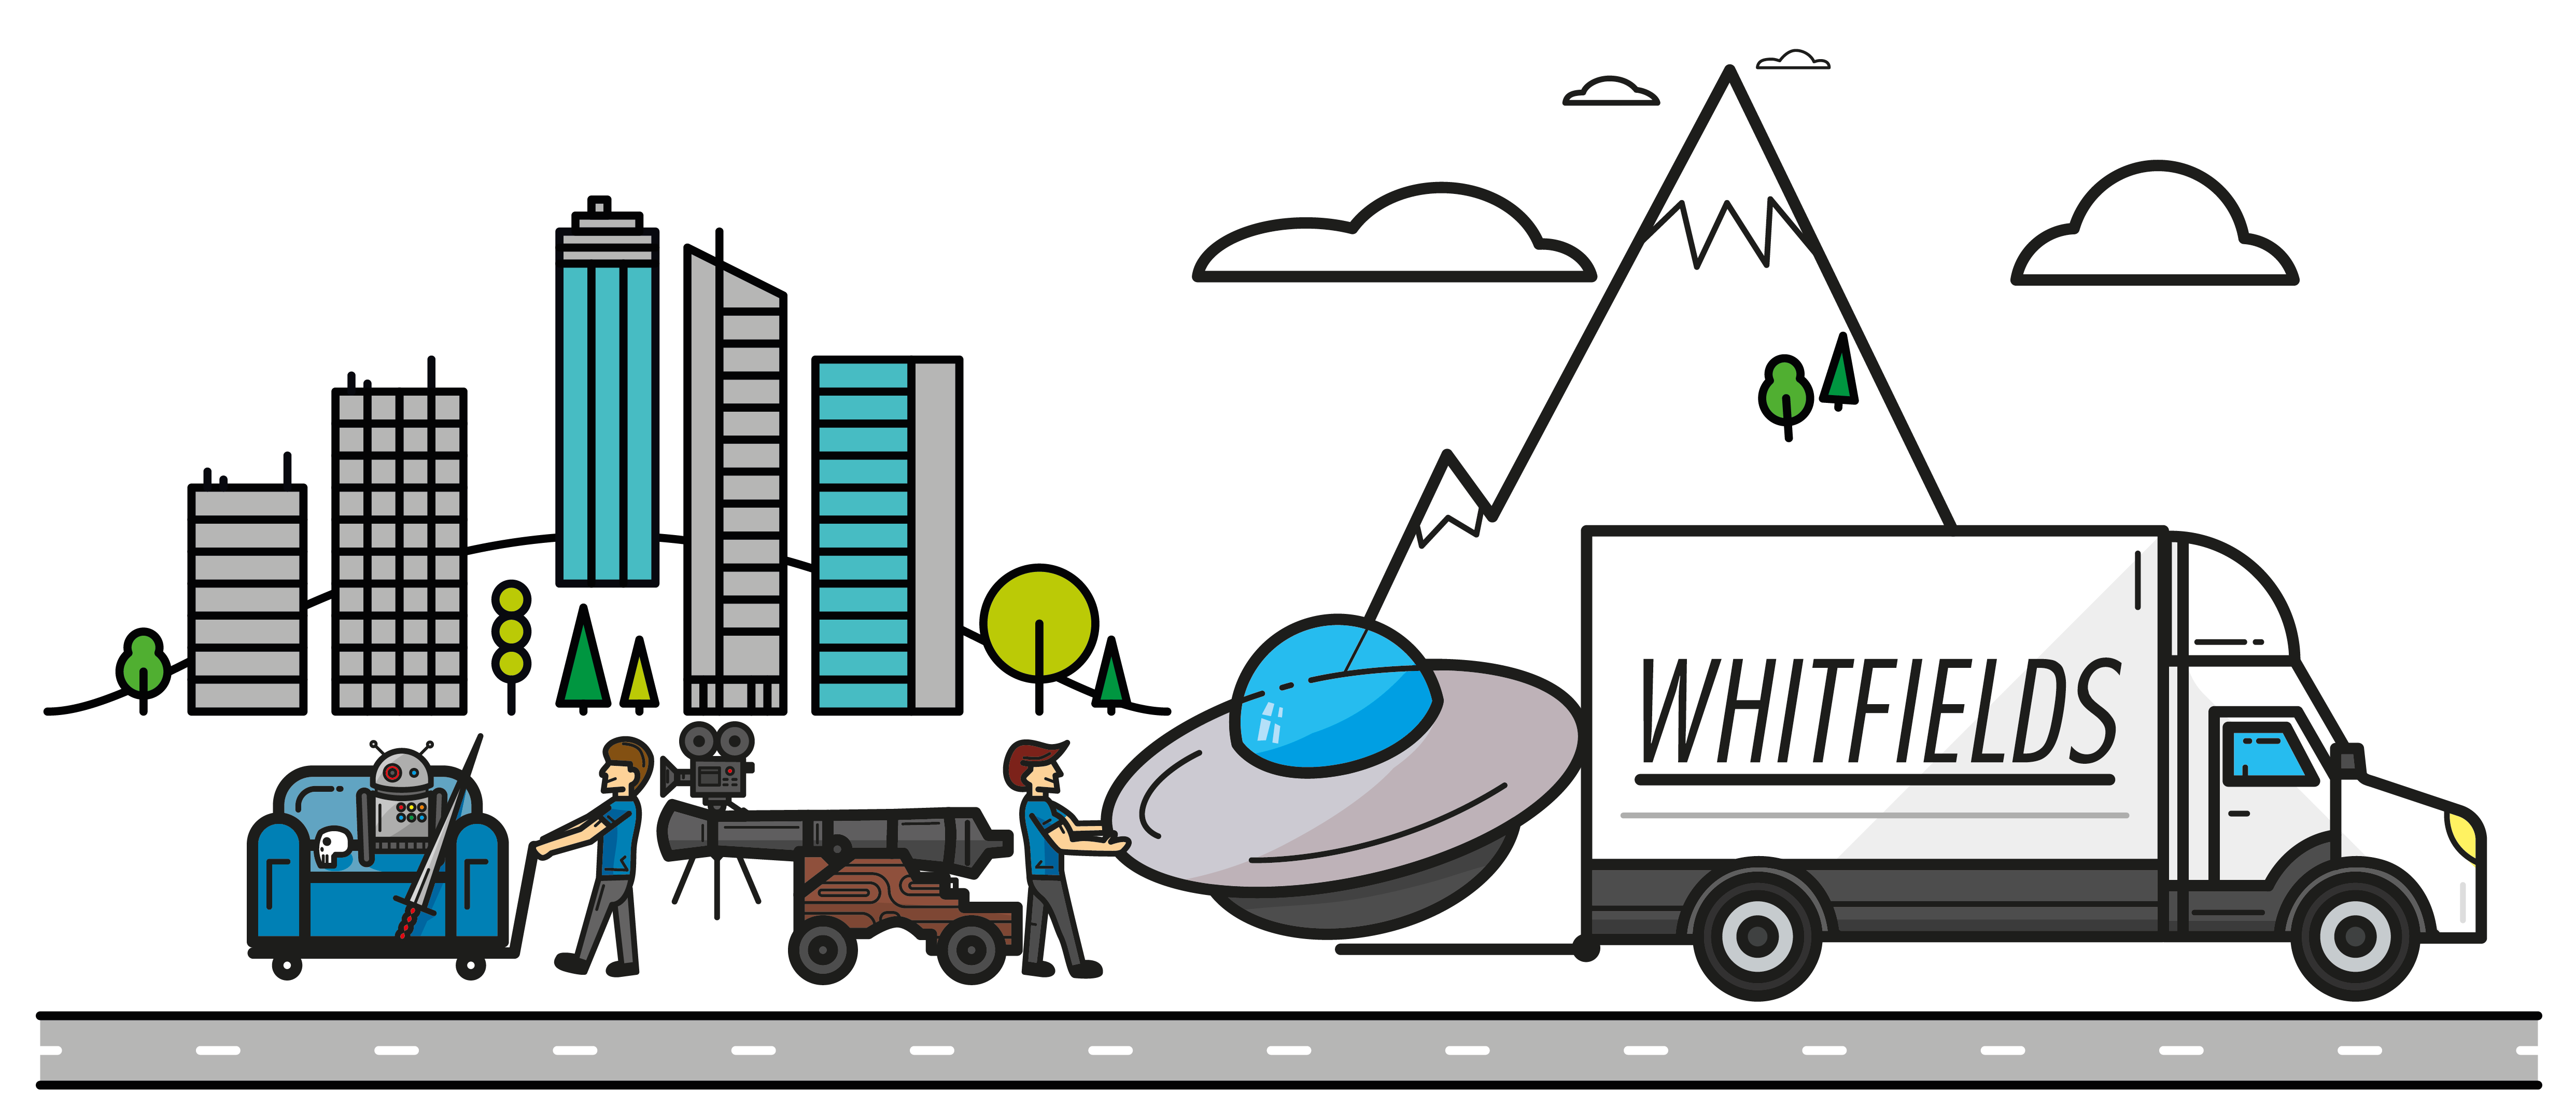 Header image showing Whitfields at work